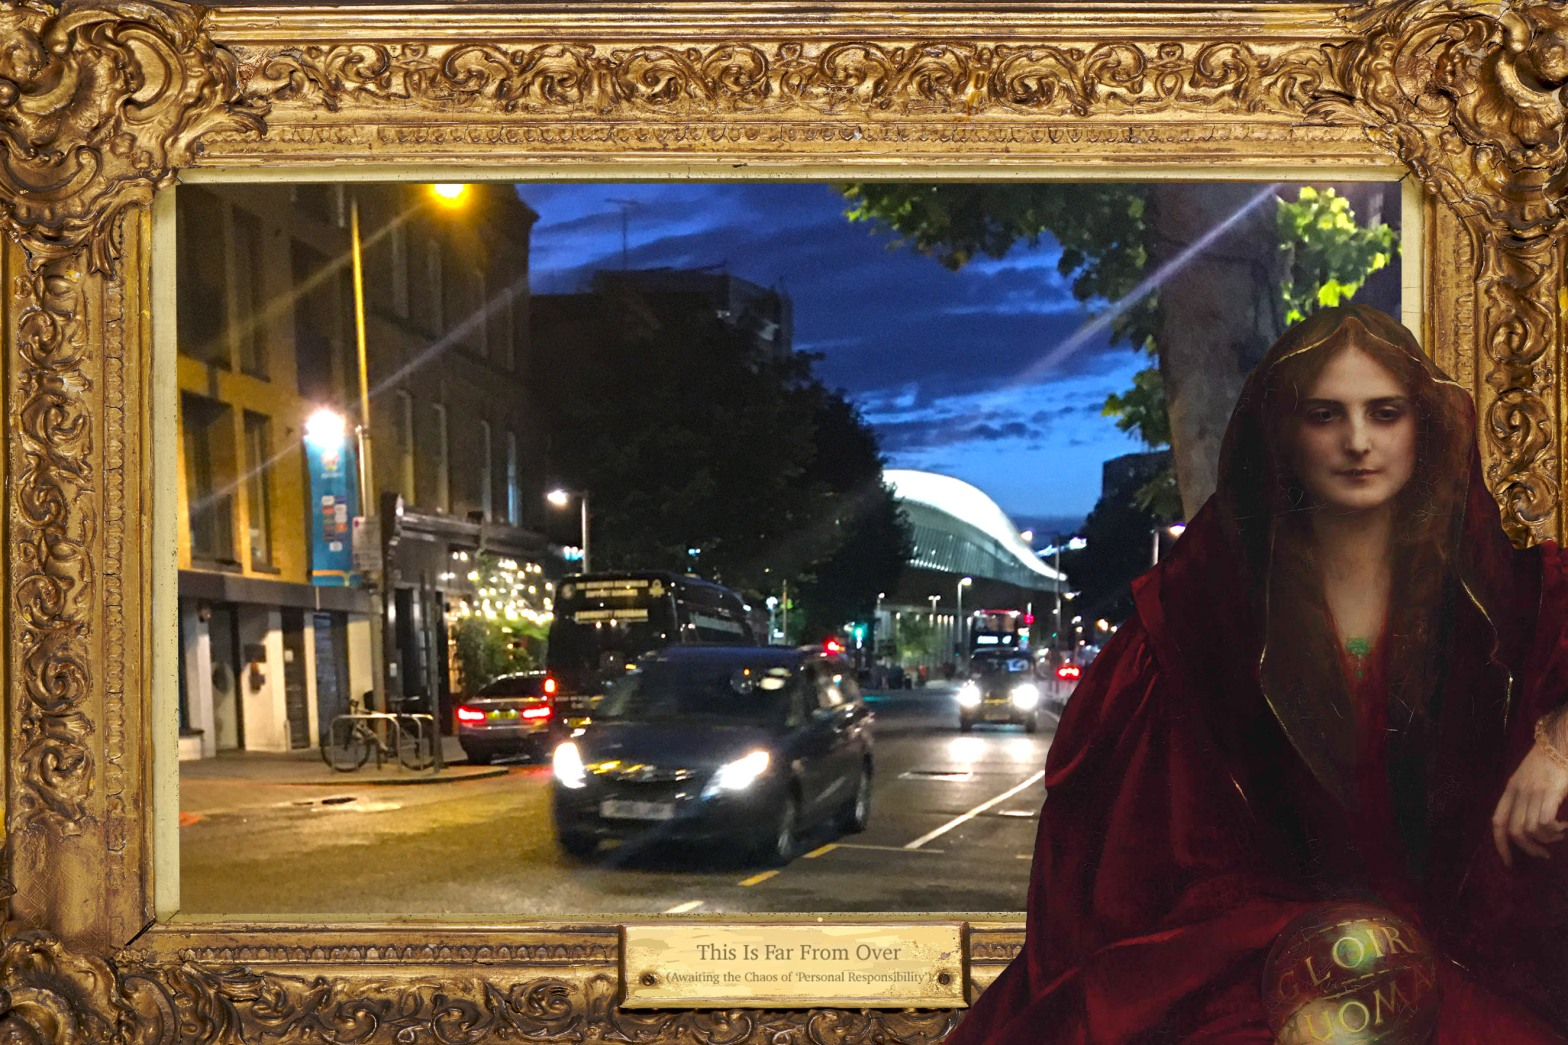 """""""This Is Far From Over"""" featuring Pascal-Adolphe-Jean Dagnan-Bouveret's """"Chimères"""" (n.d.), Tooley Street near London Bridge Station after sunset, and a gold frame from Birmingham Museums Trust (1905P8)"""